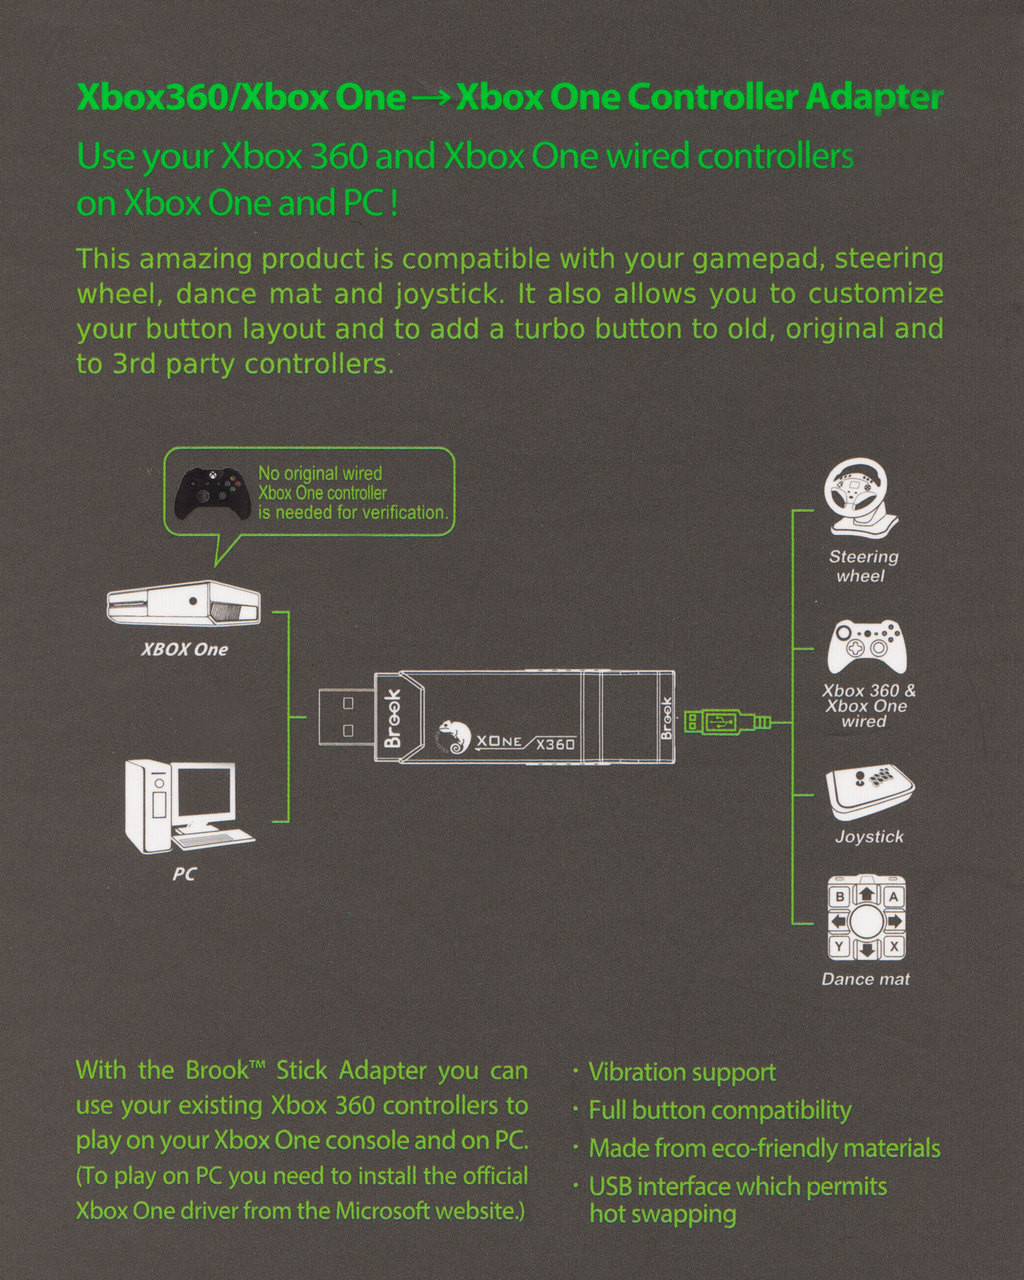 Xbox One Controller Wiring Diagram Library 360 Slim Free Image About And Xbox360 To Xboxone Converter Adapter X1 Bk Brook